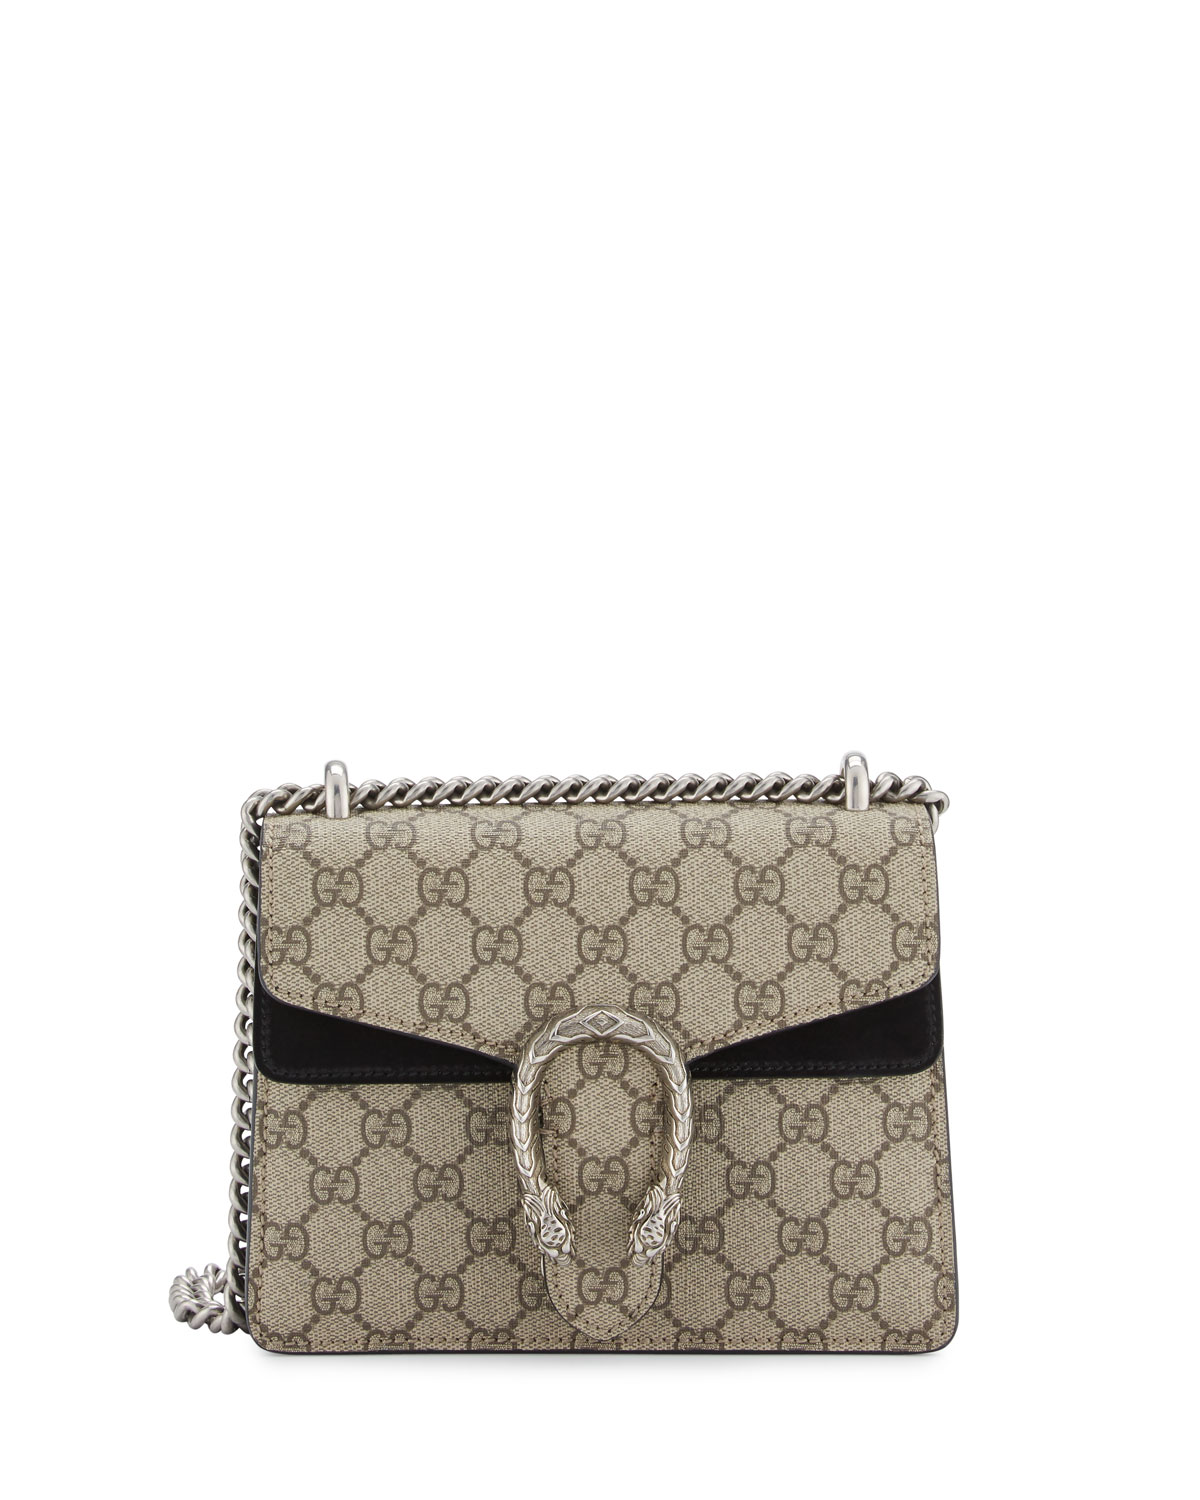 1e2a369876eec2 Gucci Dionysus GG Supreme Mini Shoulder Bag, Beige/Black | Neiman Marcus